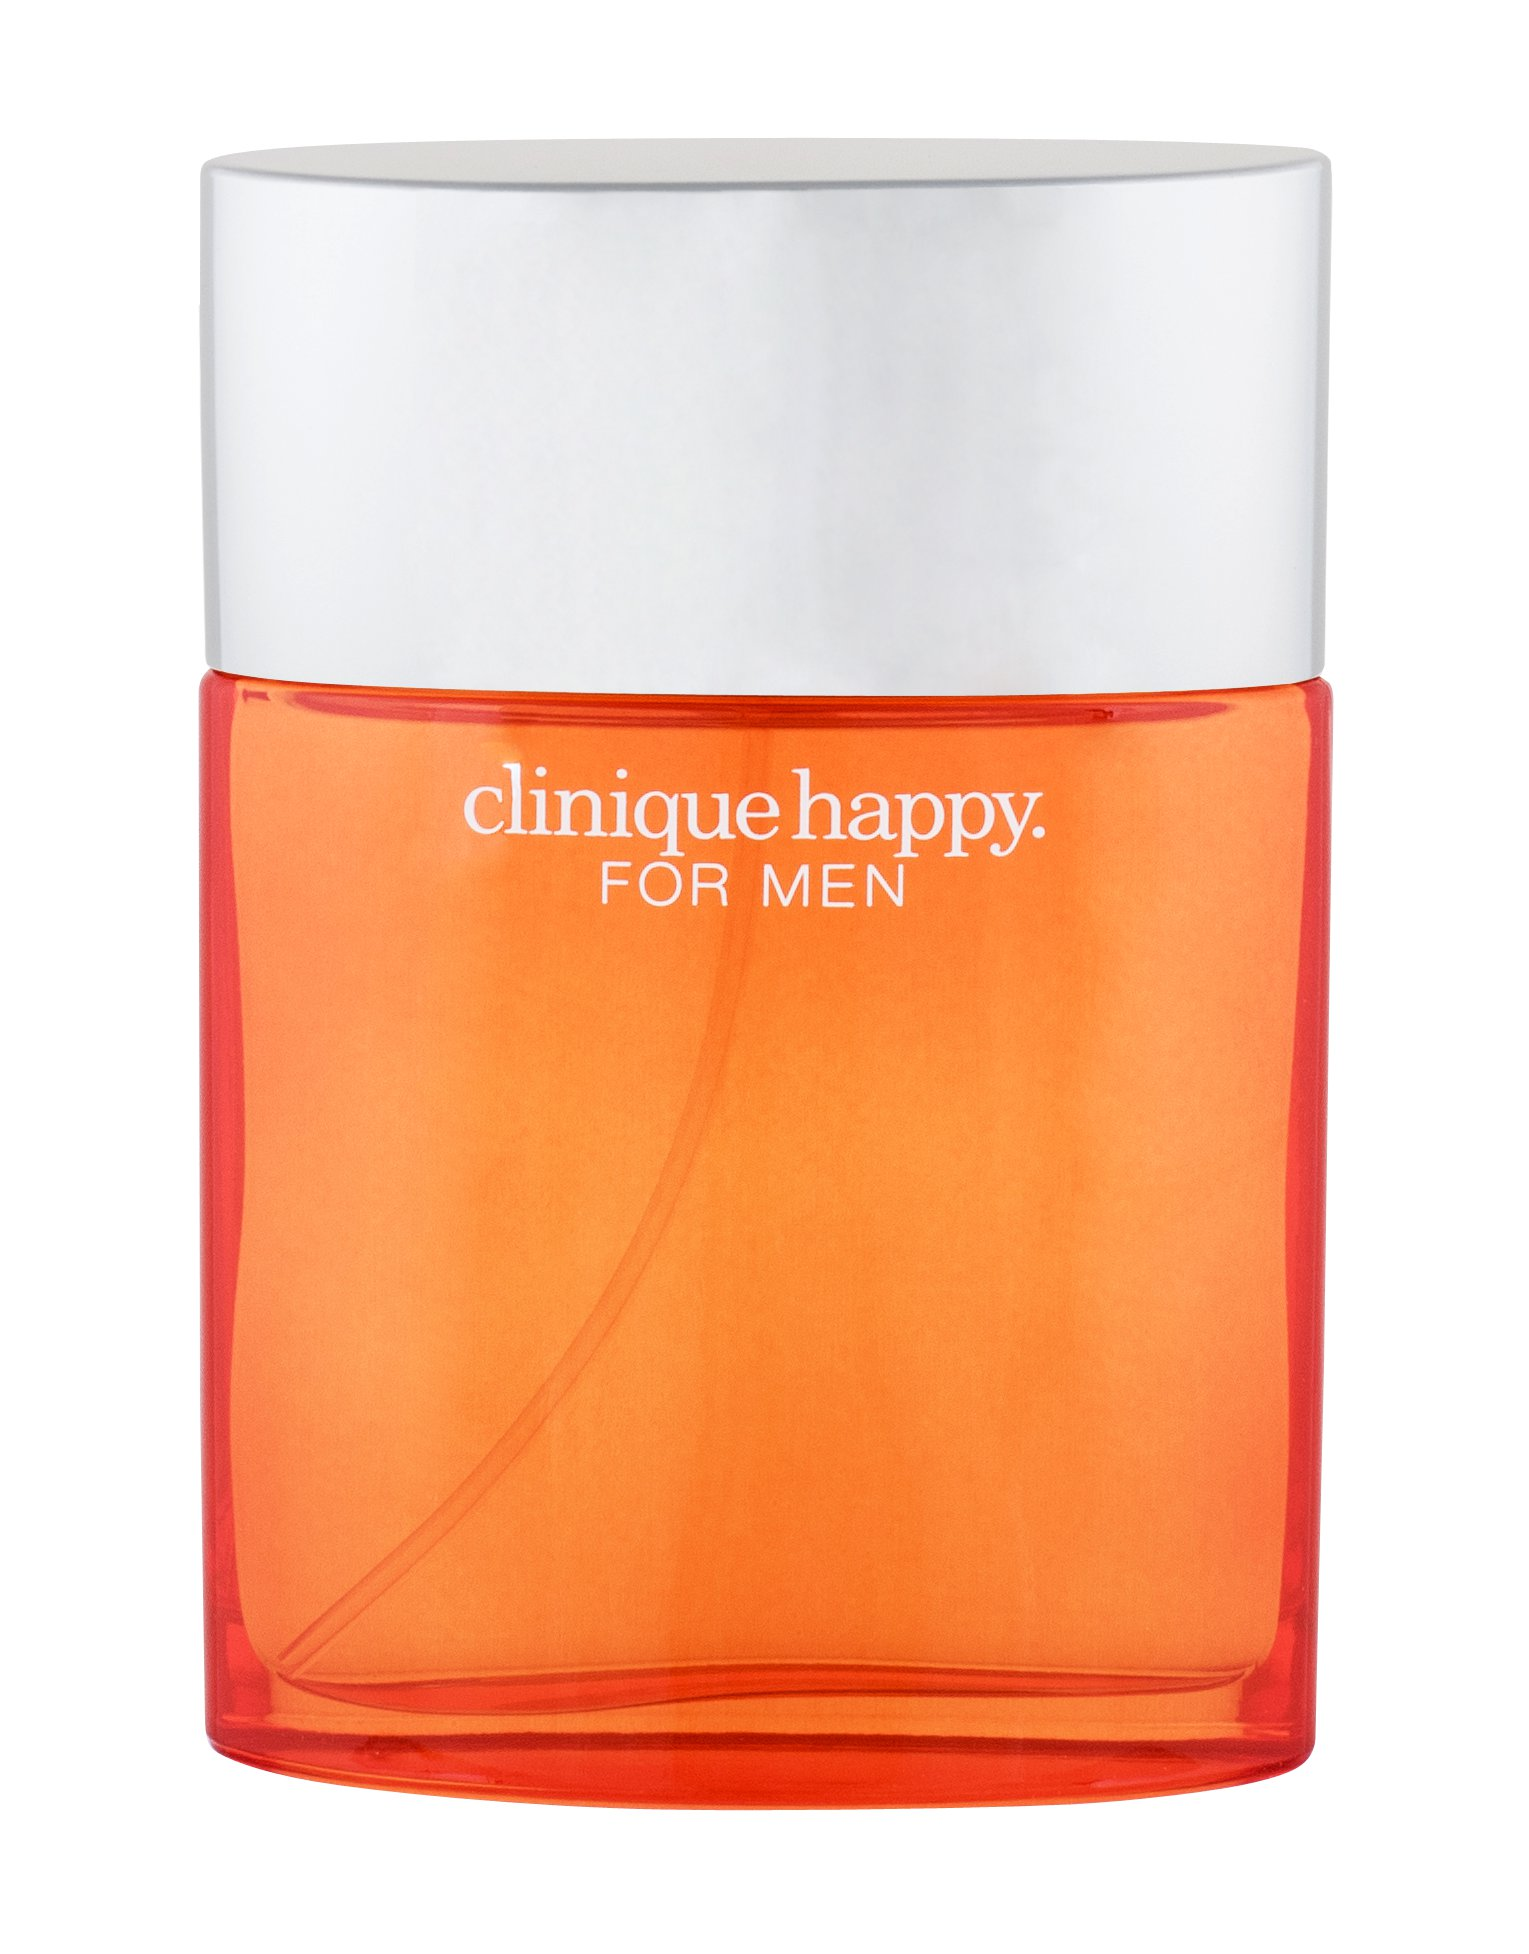 Clinique Happy For Men, Kolínska voda 100ml